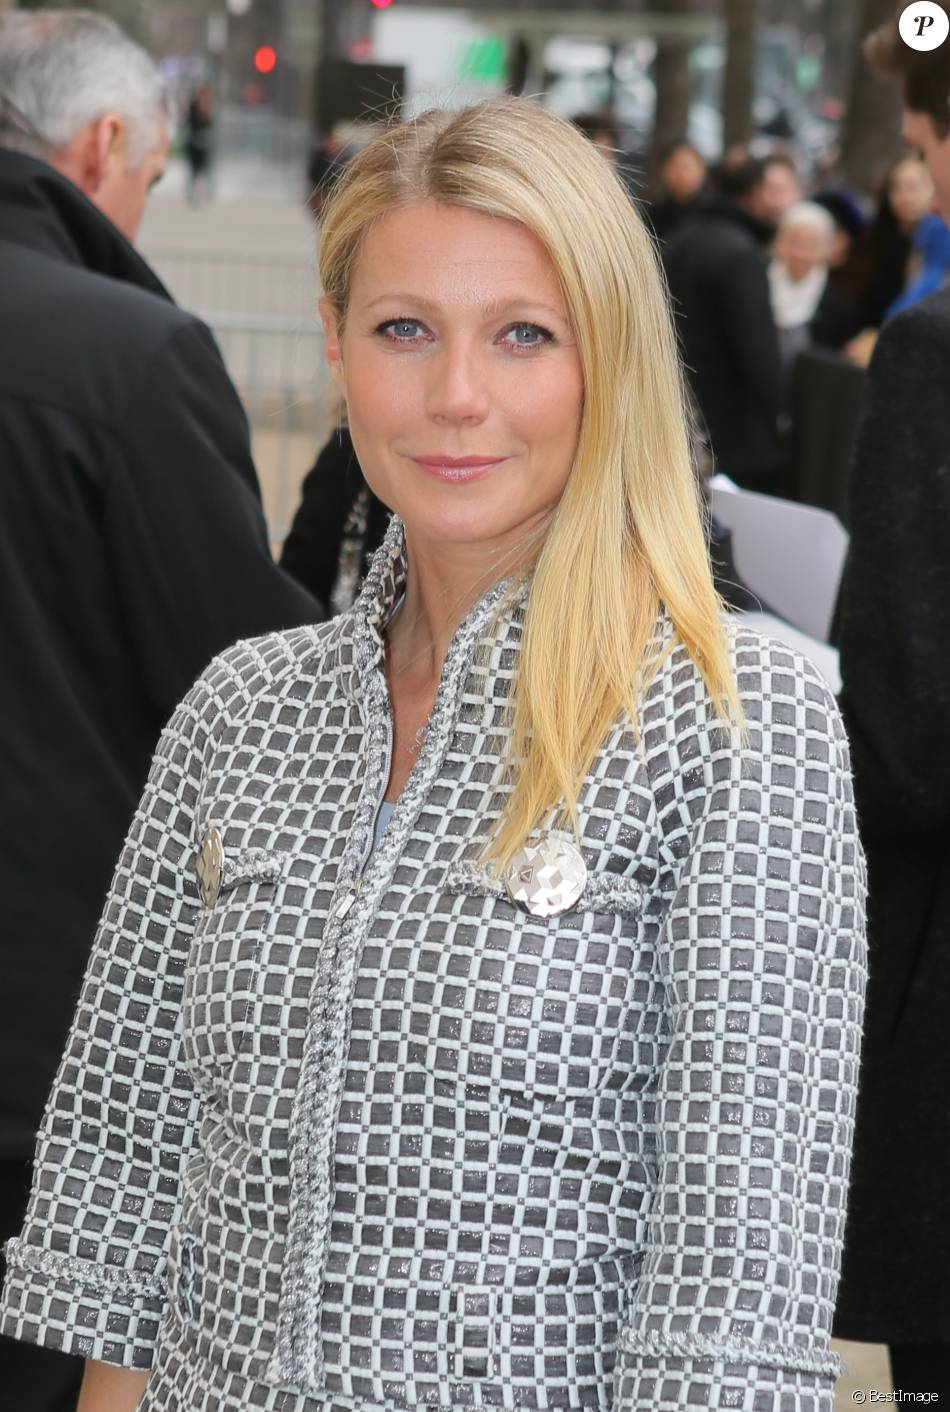 Astounding Gwyneth Paltrow Au Defile De Mode Haute Couture Chanel Collection Hairstyles For Women Draintrainus